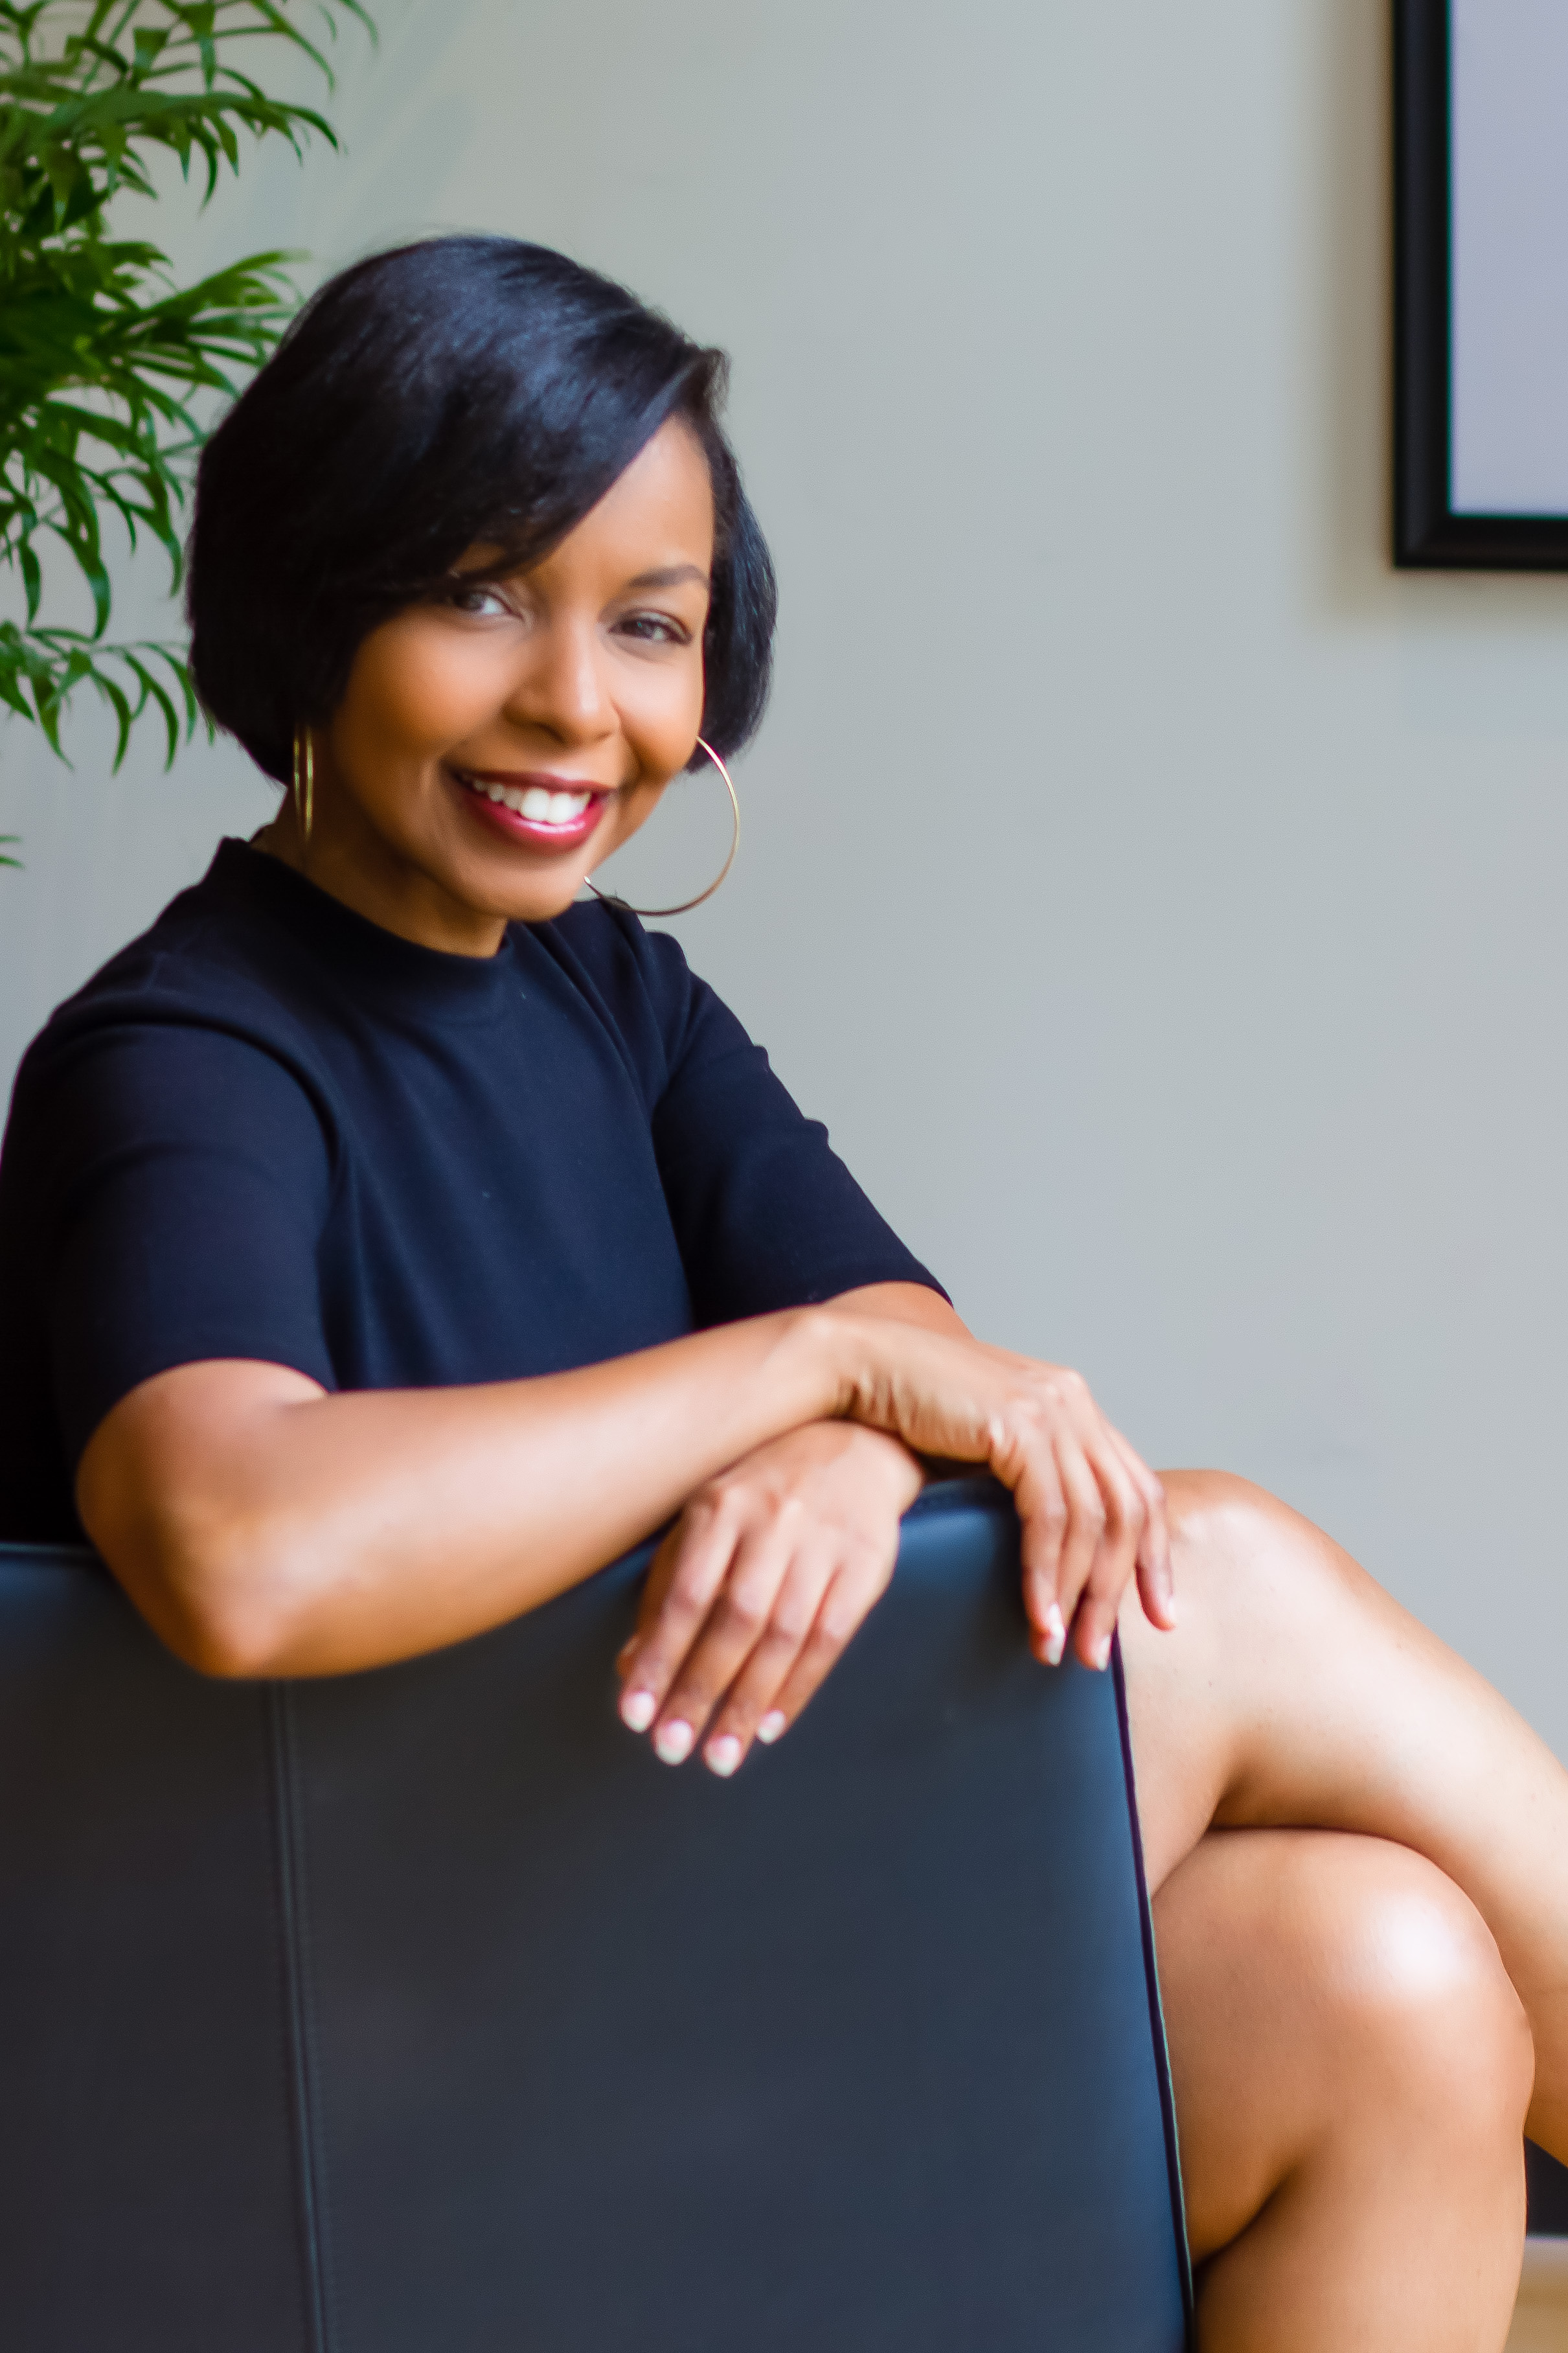 Hello, Let's discuss how I can help you build and grow the brand you have envisioned. I look forward to speaking to you soon.Charlene Castellanos -